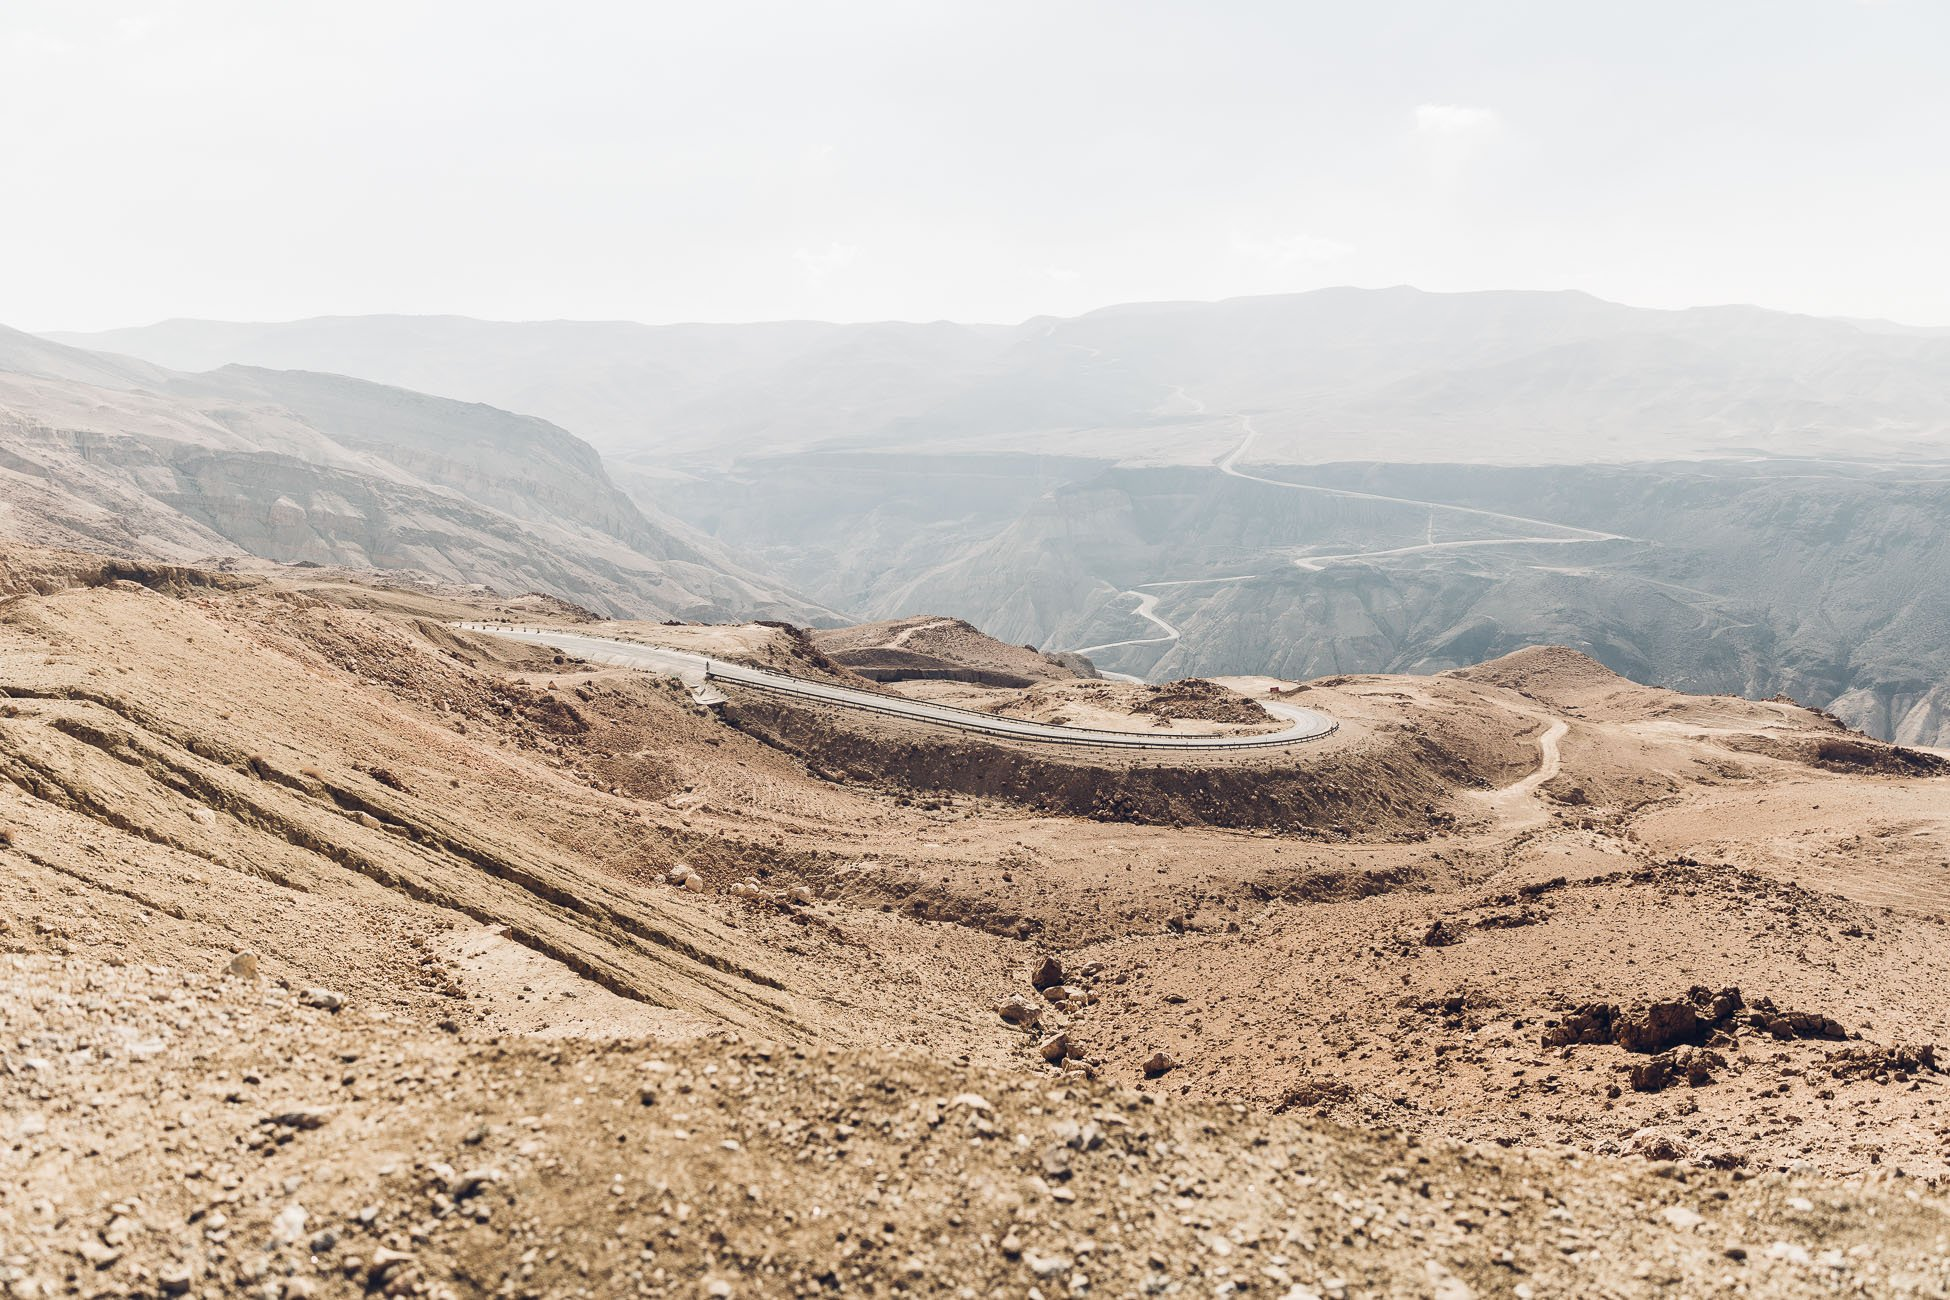 High above in the mountains in Jordan